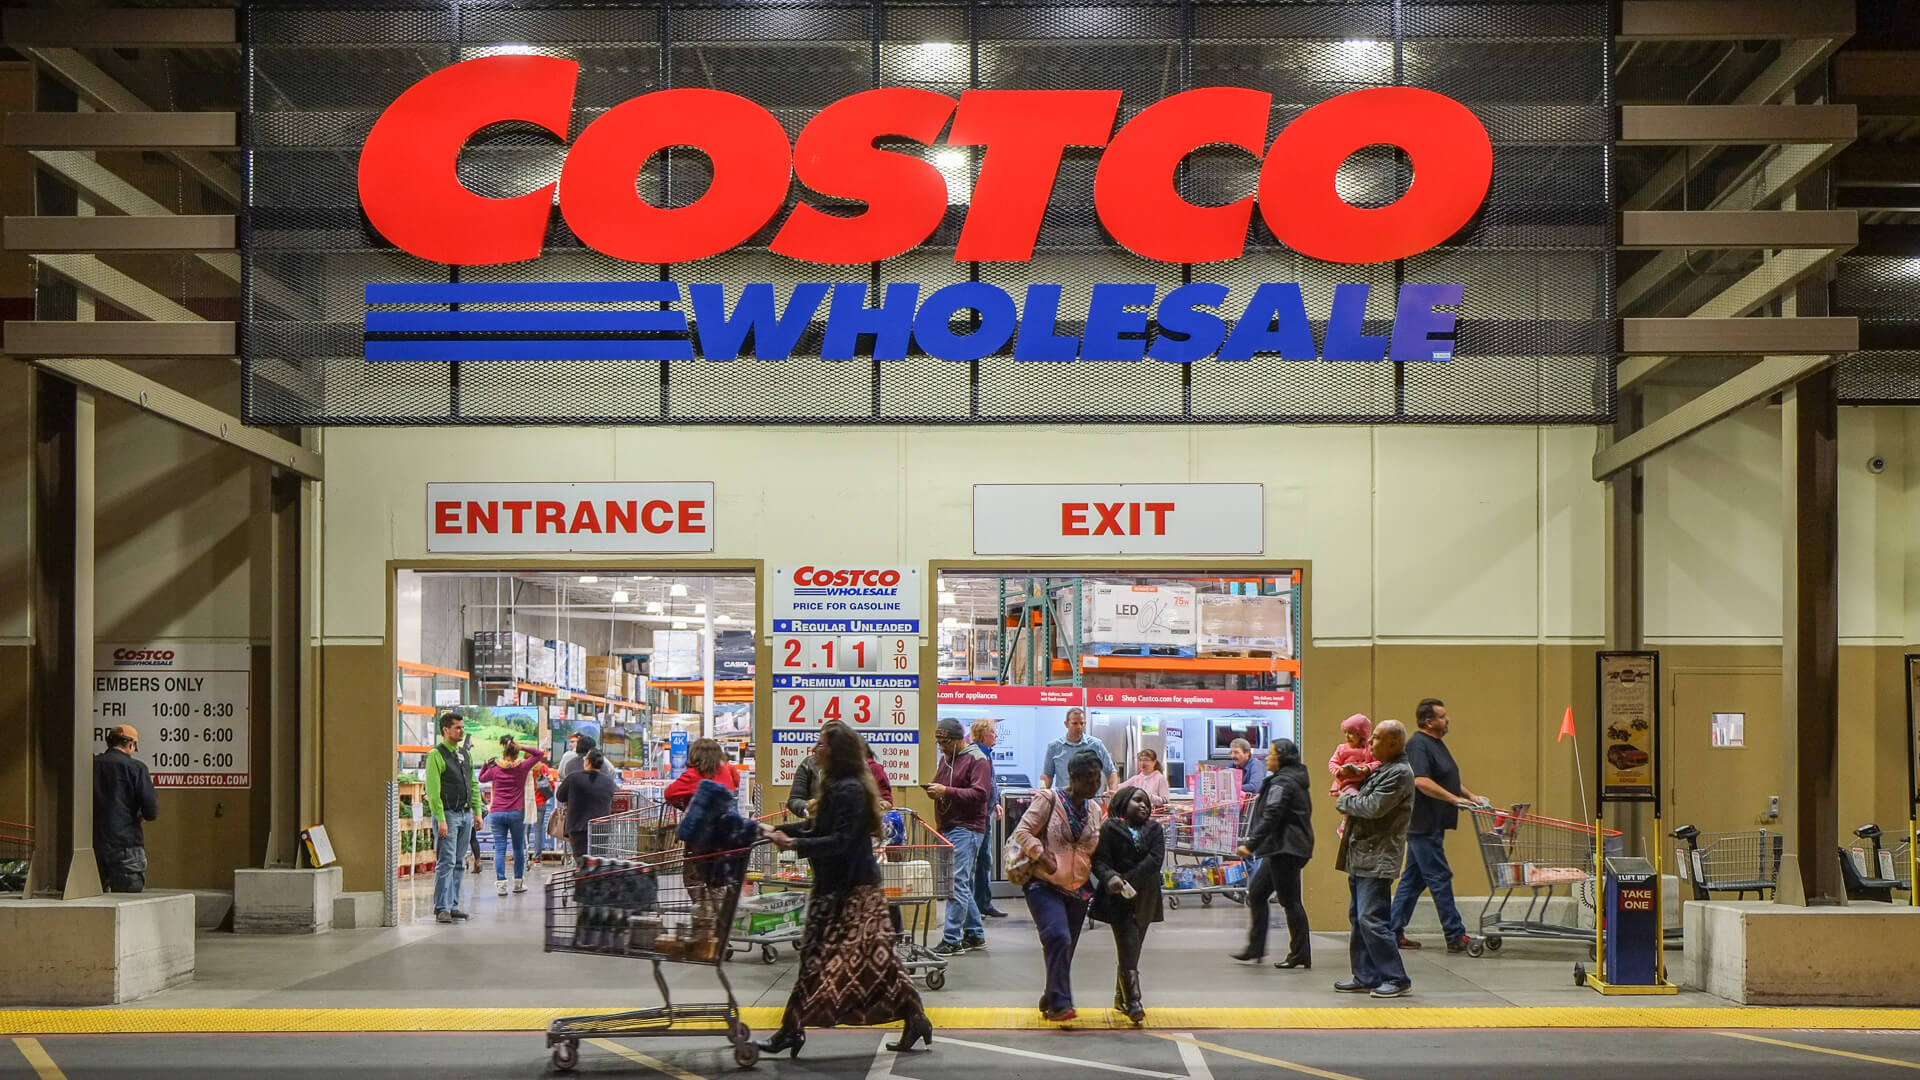 25 Items That Are Always Cheaper at Costco | GOBankingRates